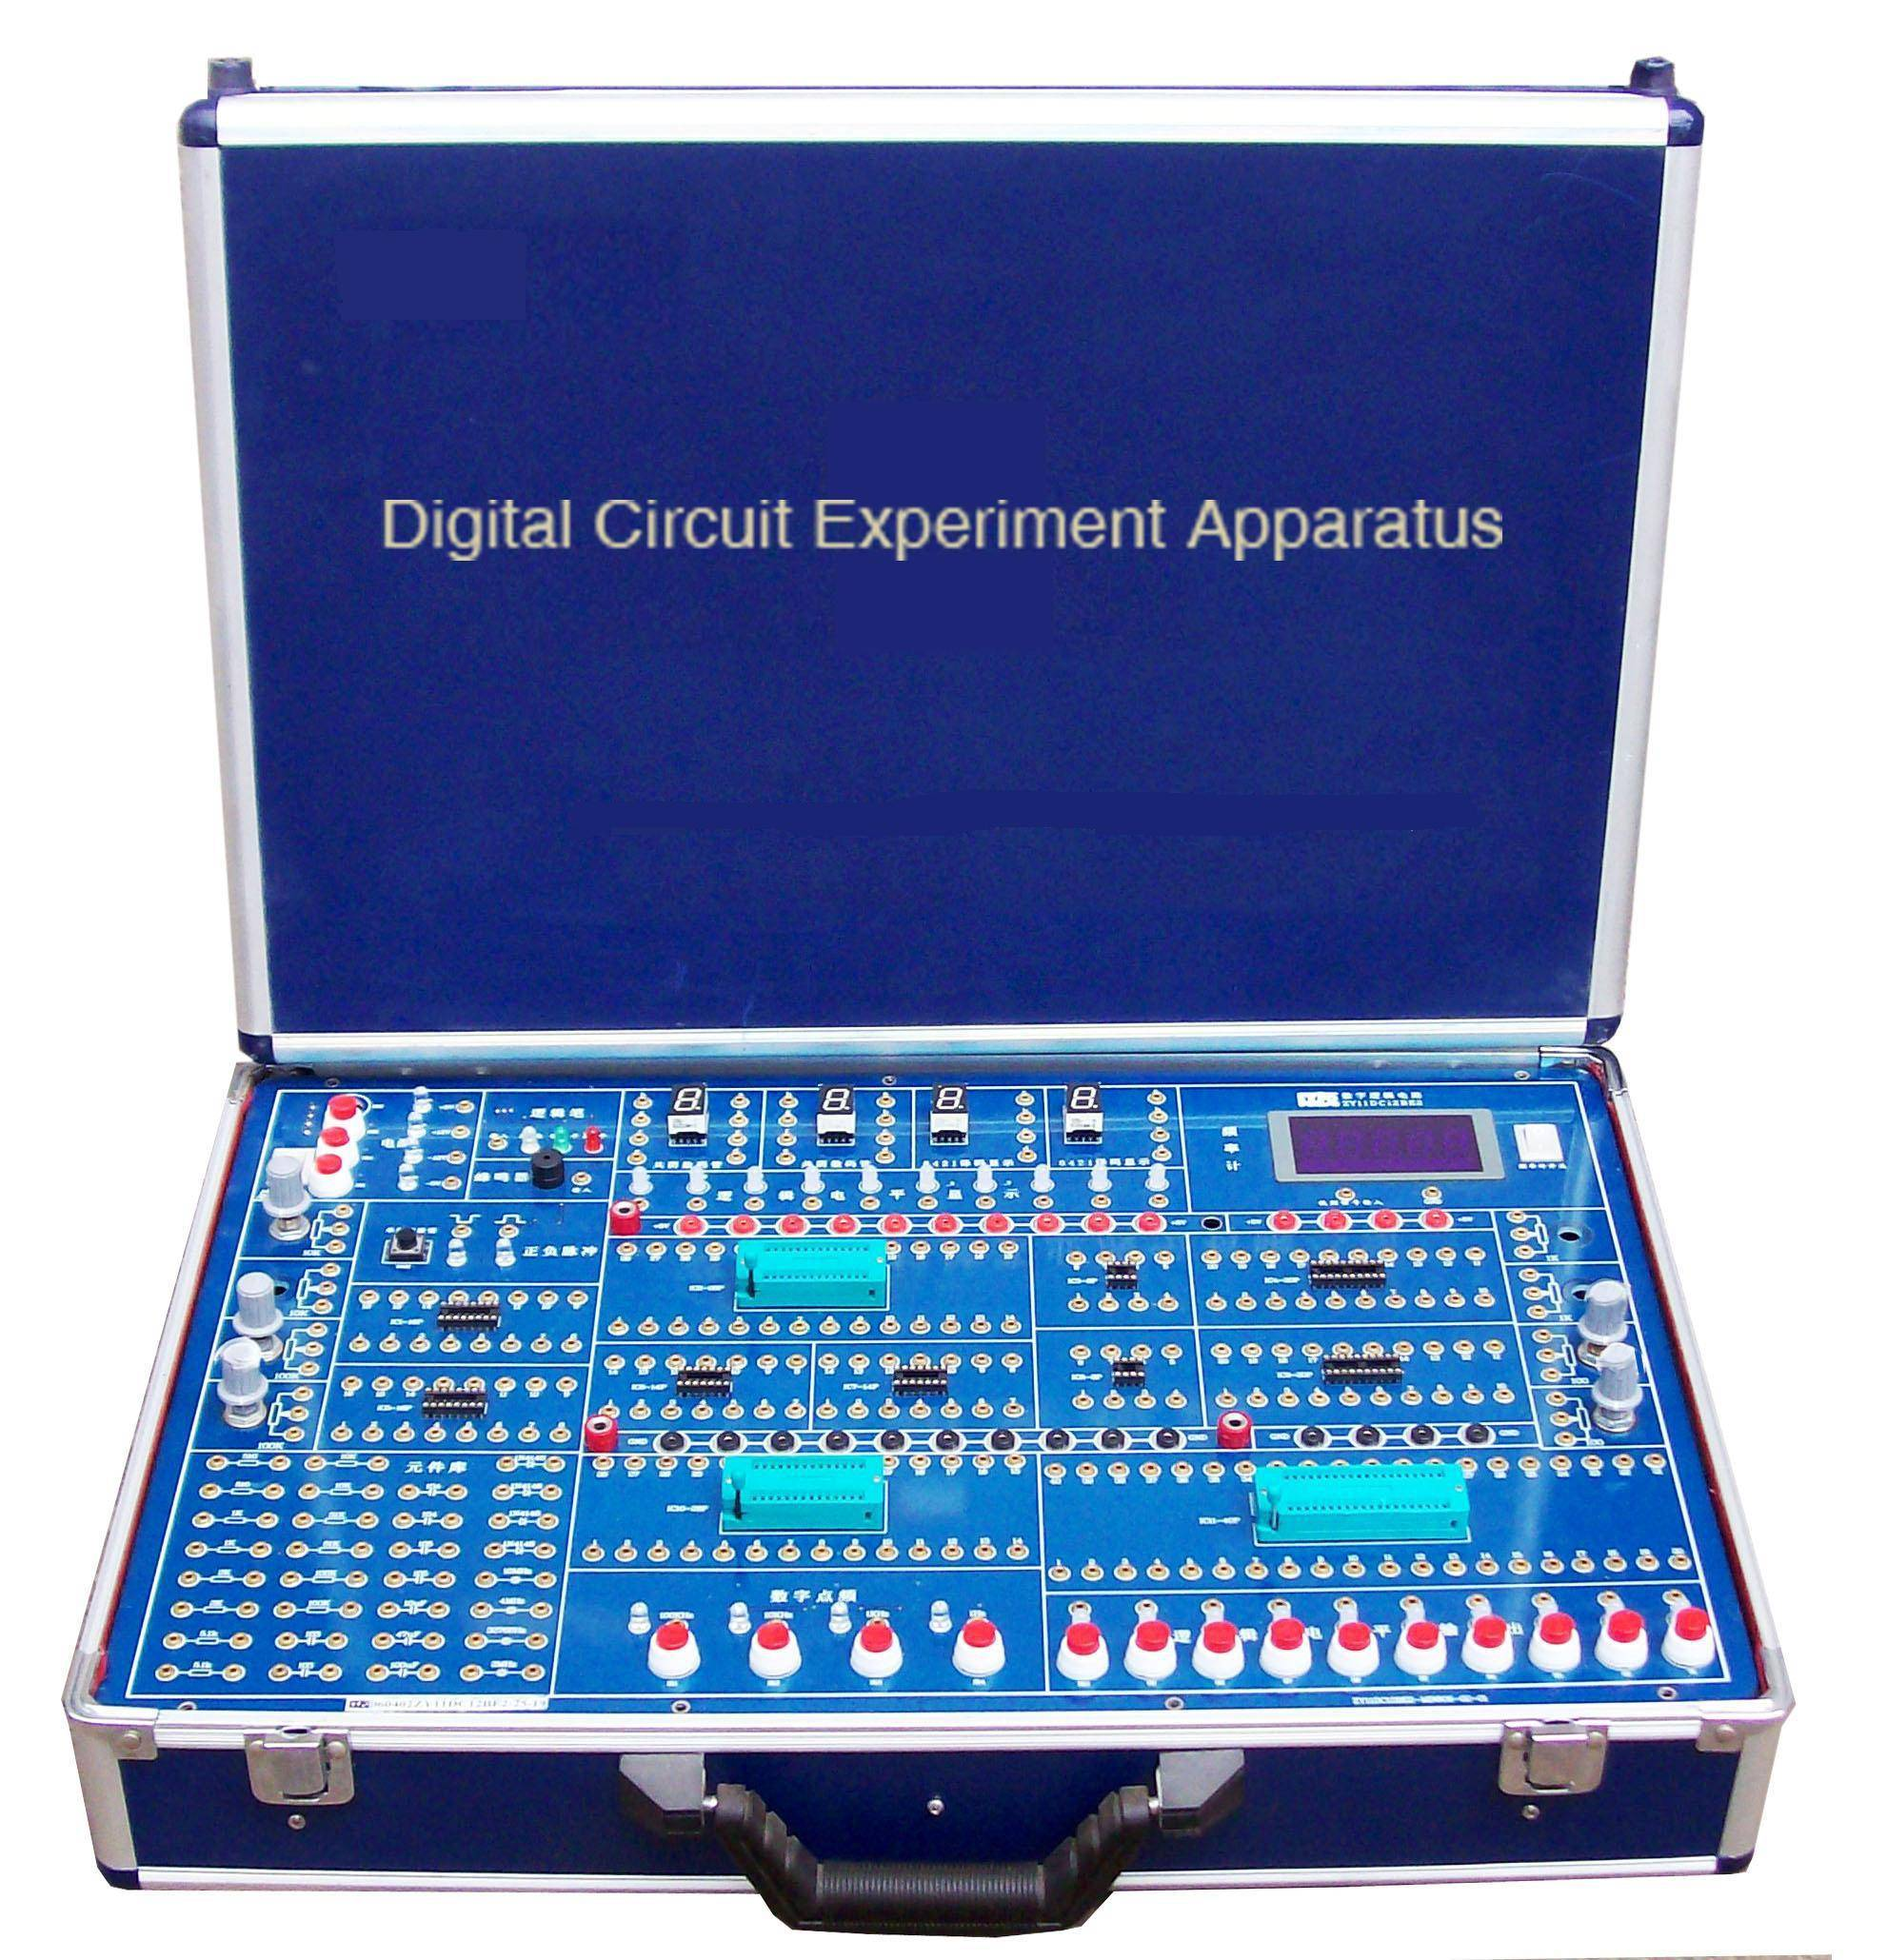 ES5101E2 Digital Circuit Experiment Apparatus